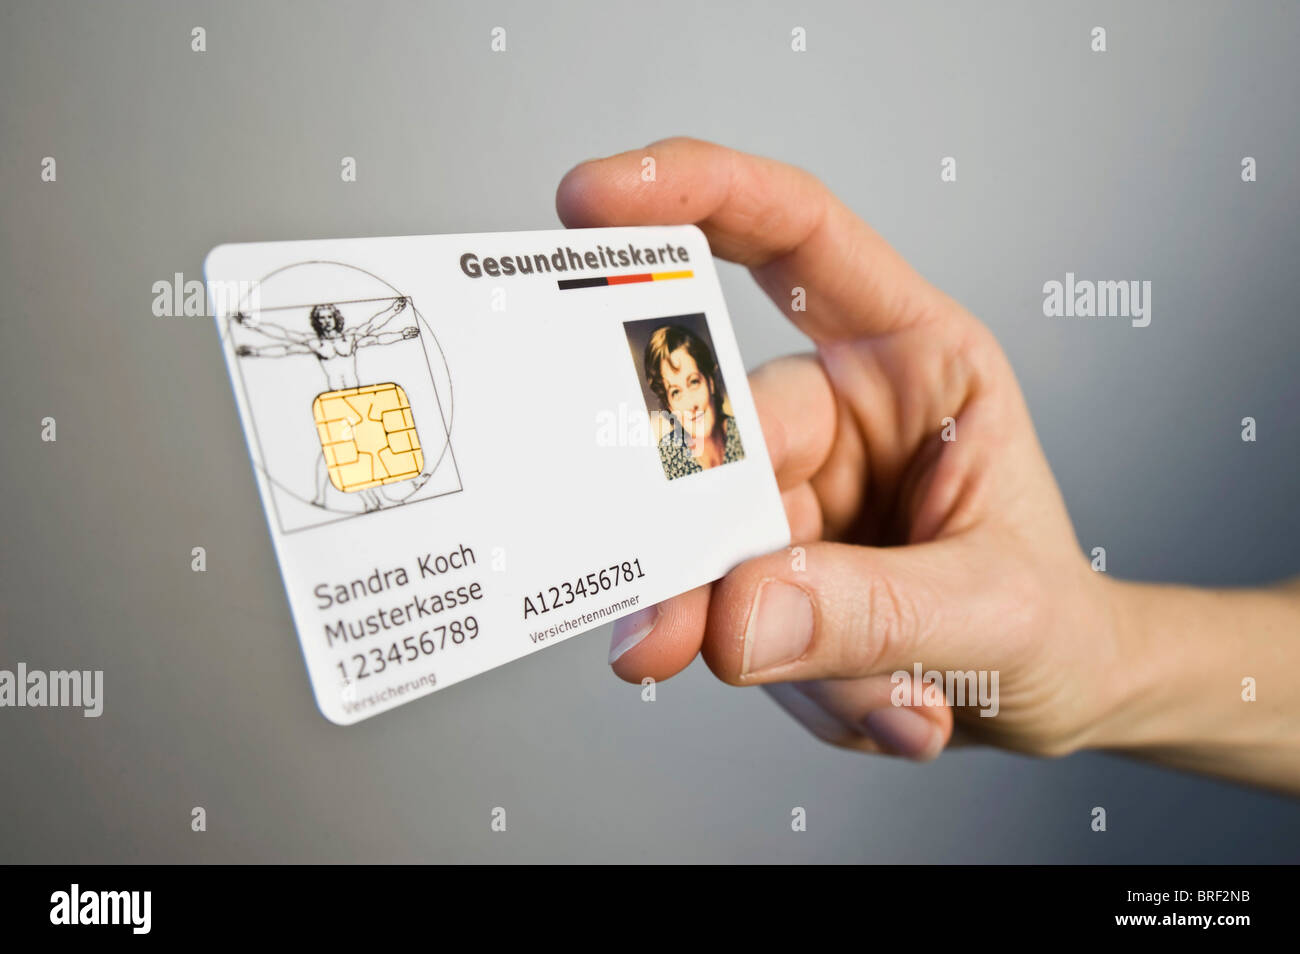 German electronic health insurance card - Stock Image